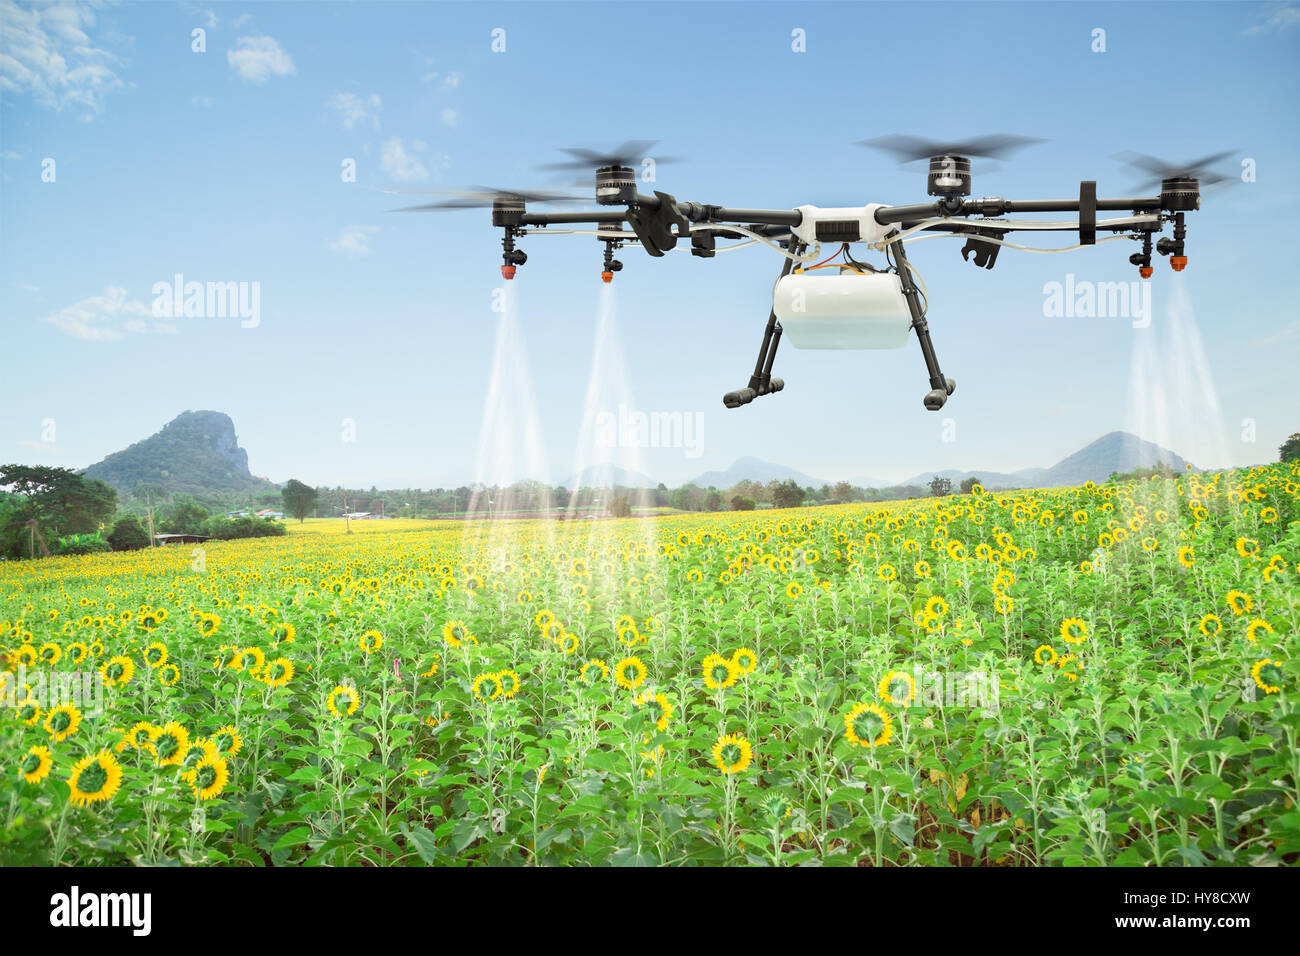 Agriculture Drone Stock Photos & Agriculture Drone Stock Images - Alamy